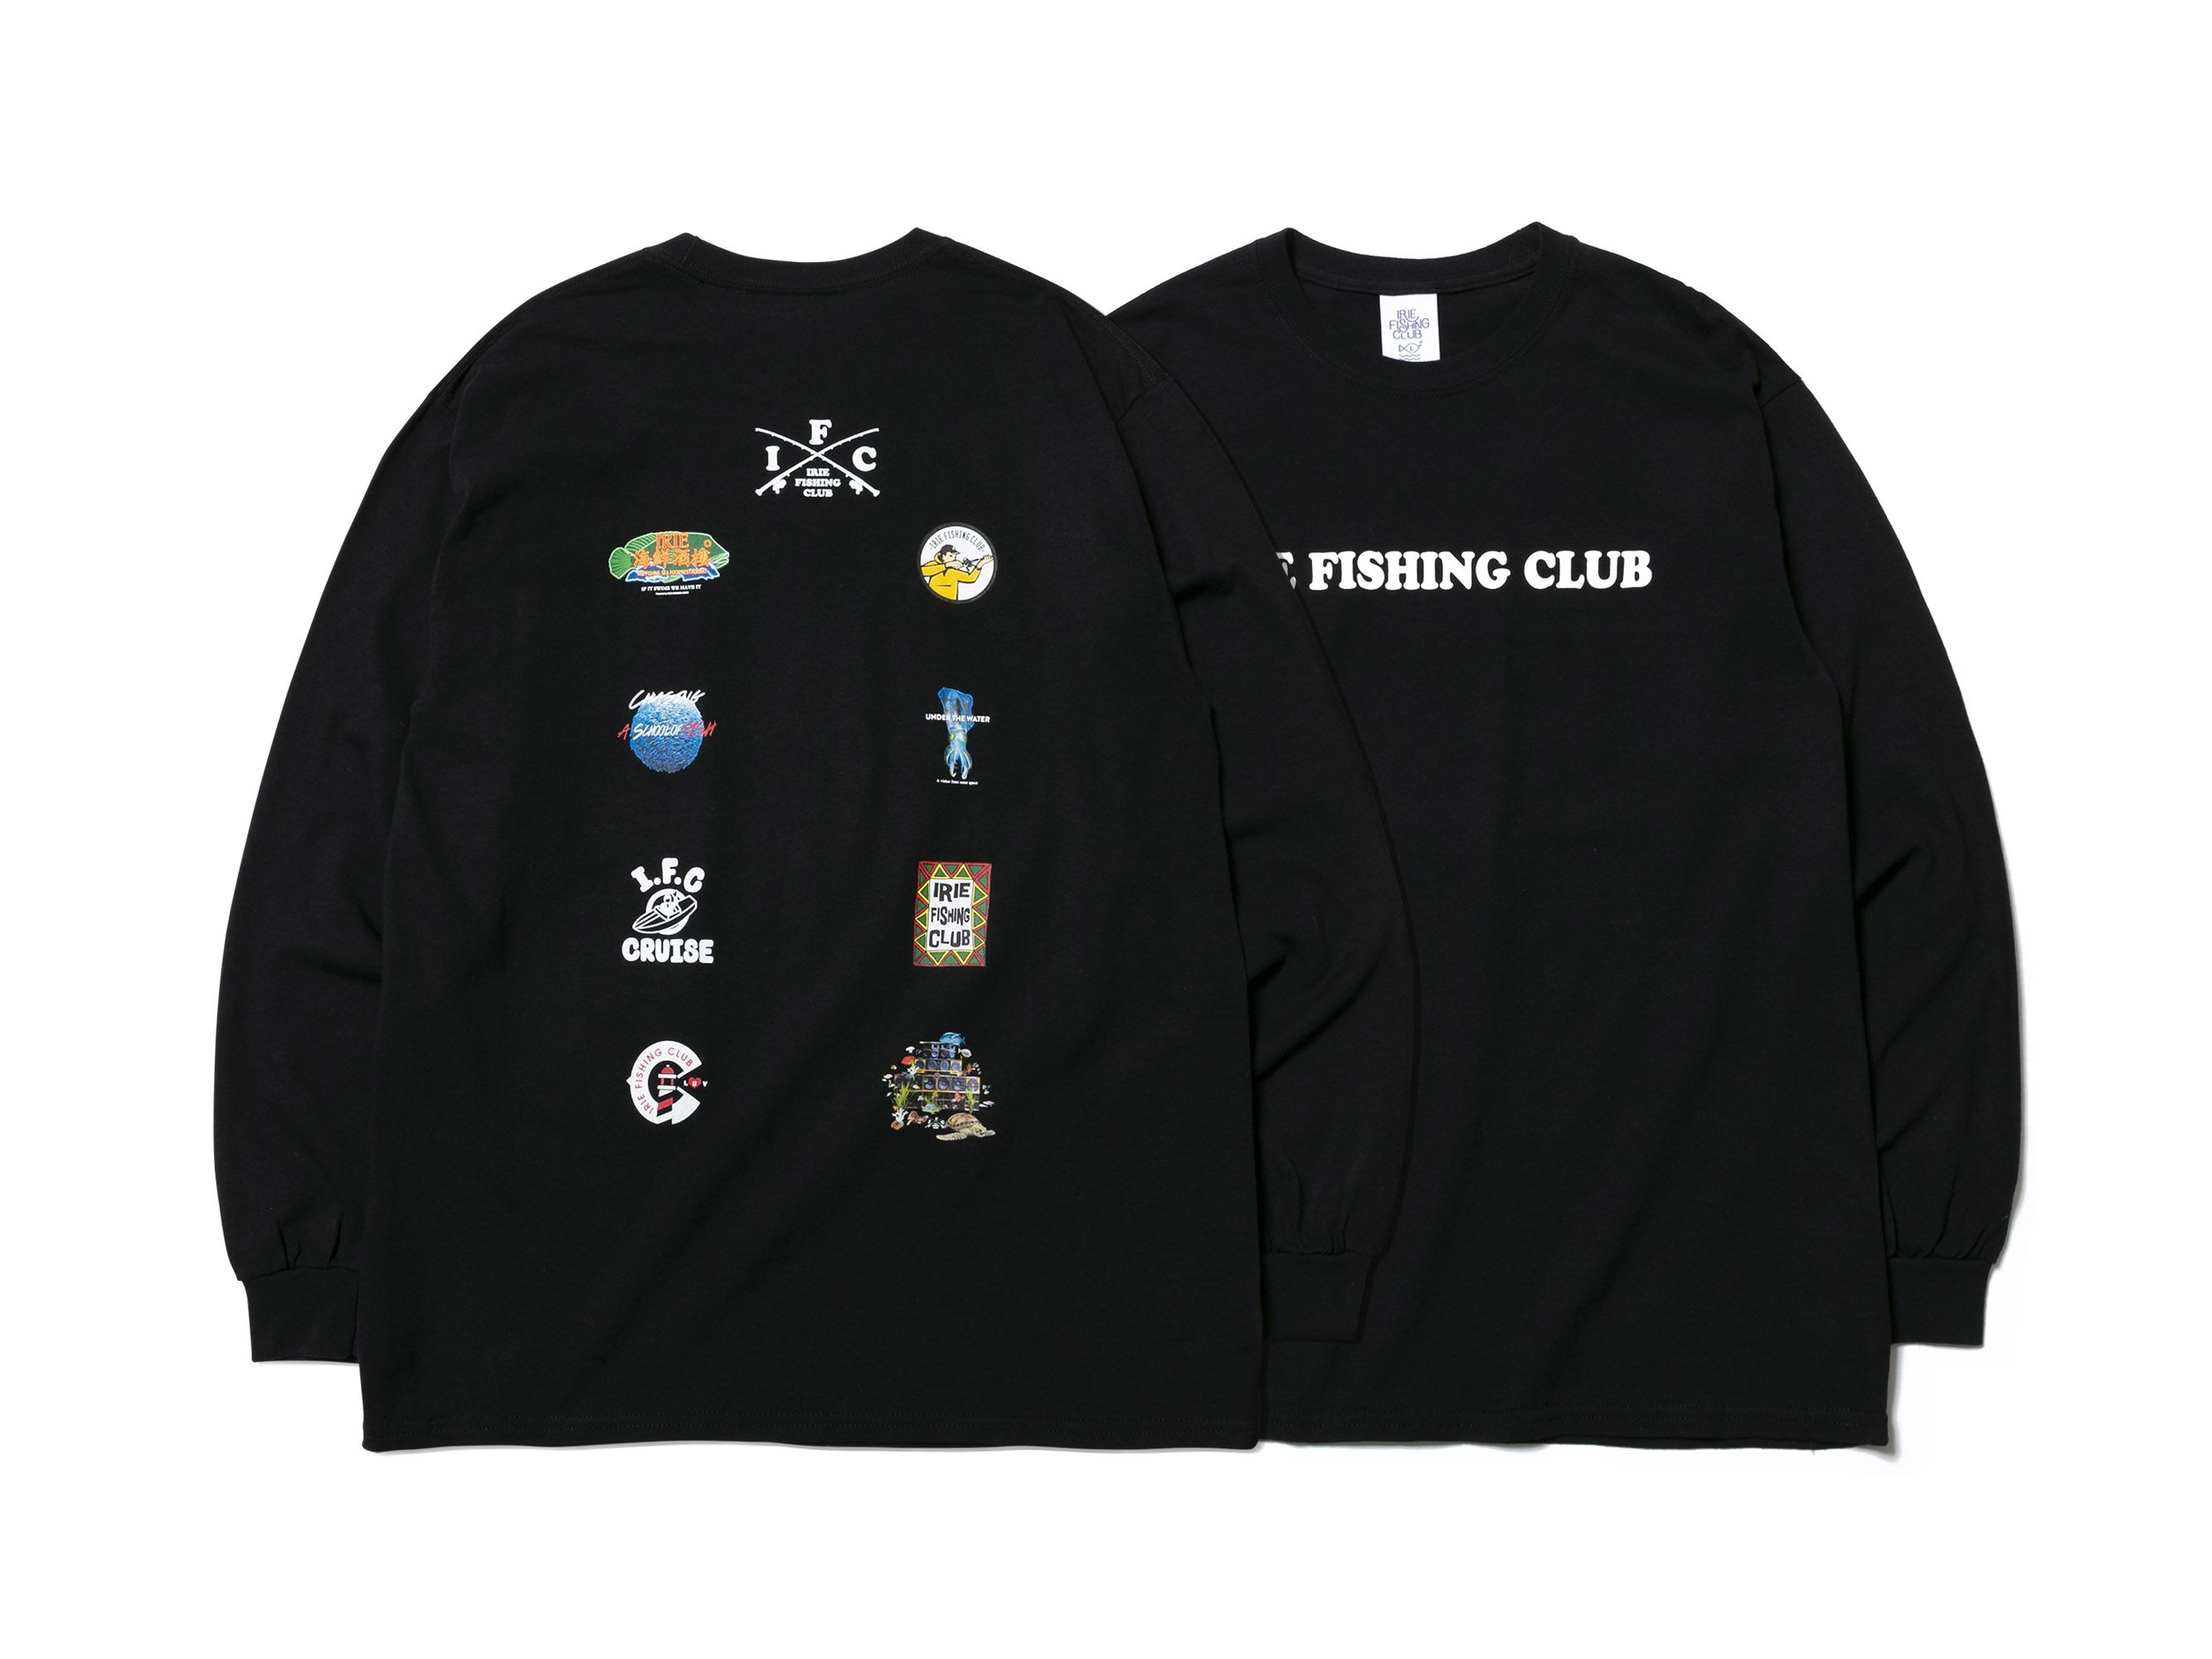 I.F.C MULTI LOGO L/S TEE -IRIE FISHING CLUB-